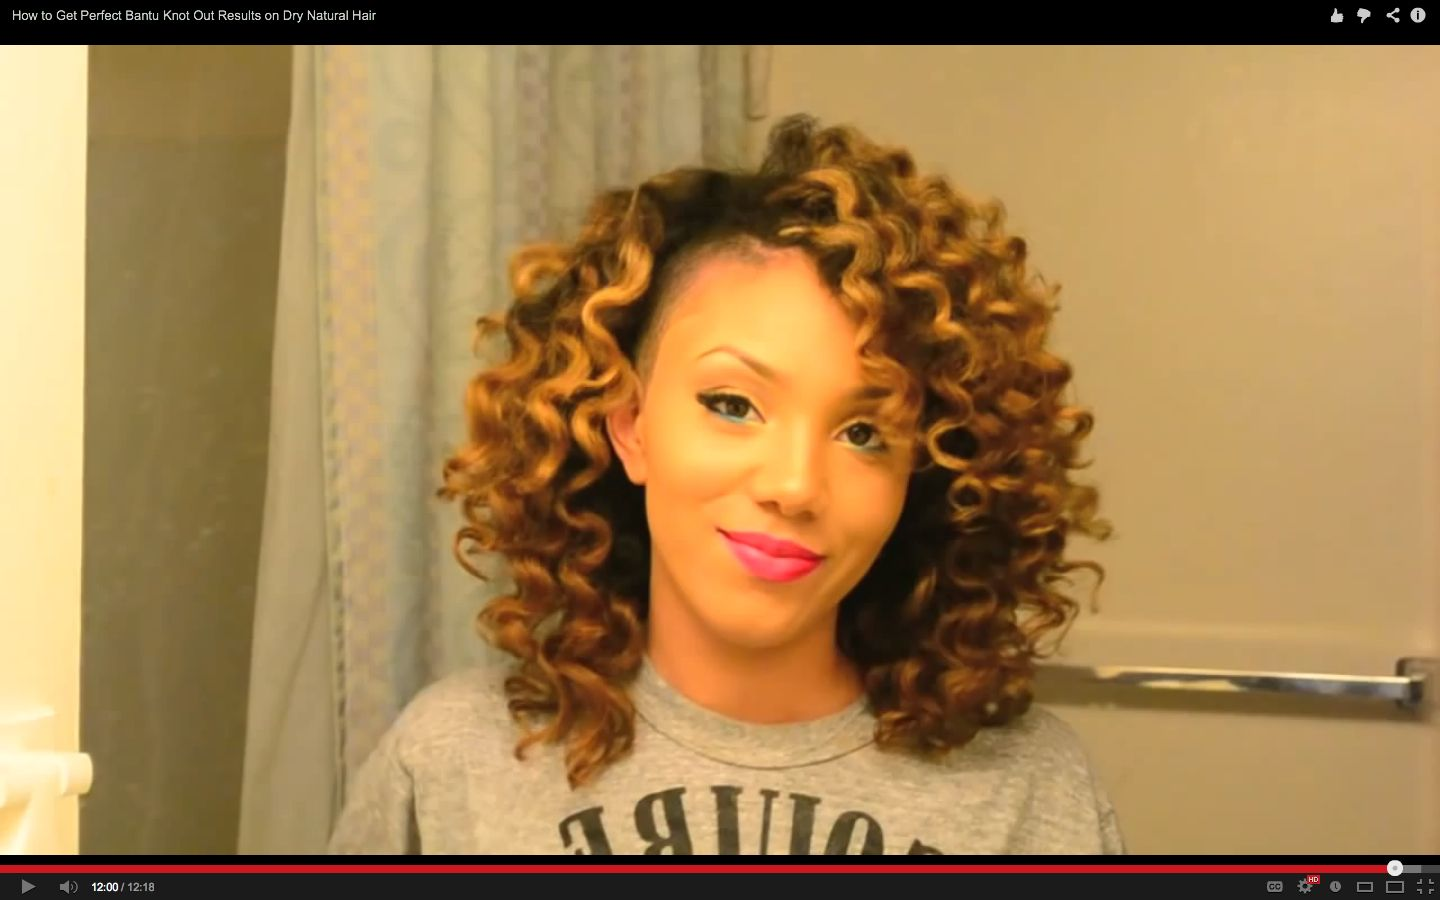 Bantu Knot Out On Natural Hair